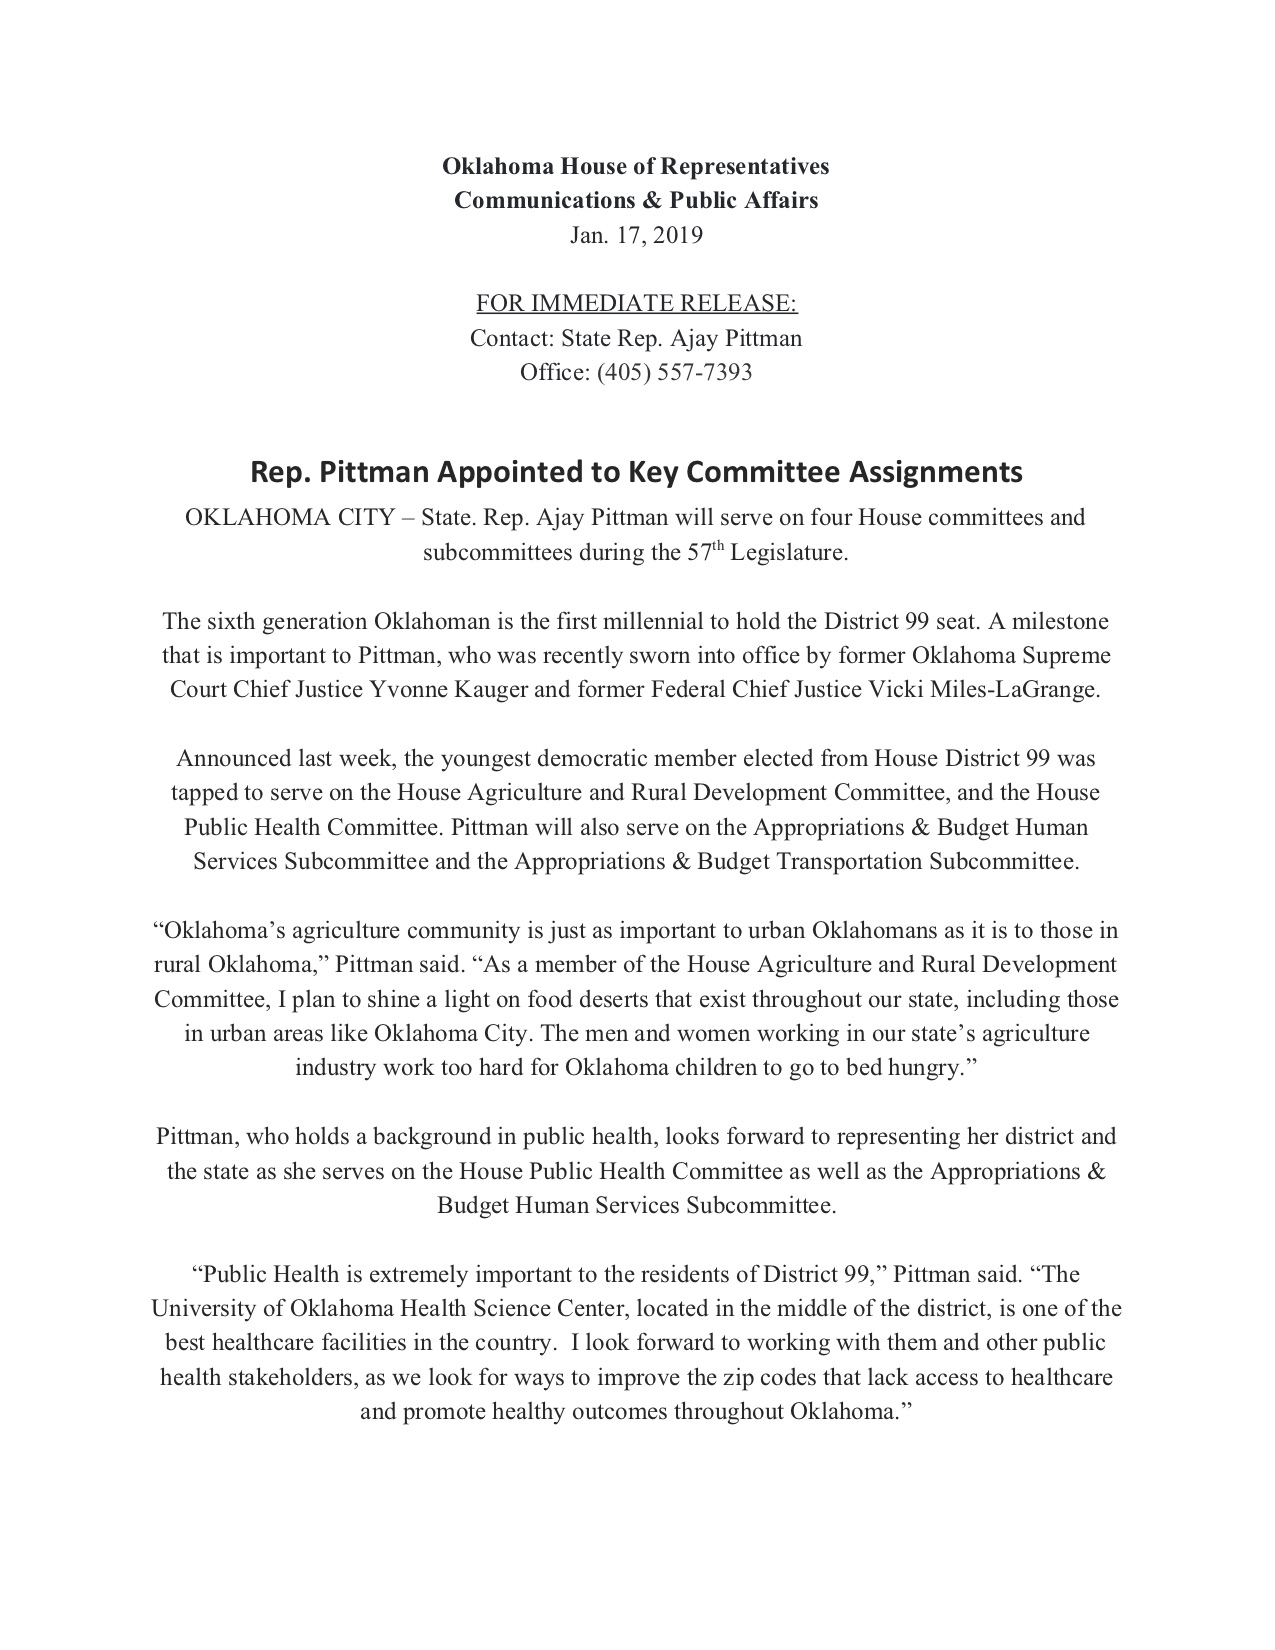 Pittman-Appointed-KeyCommitteeAssignments.jpg